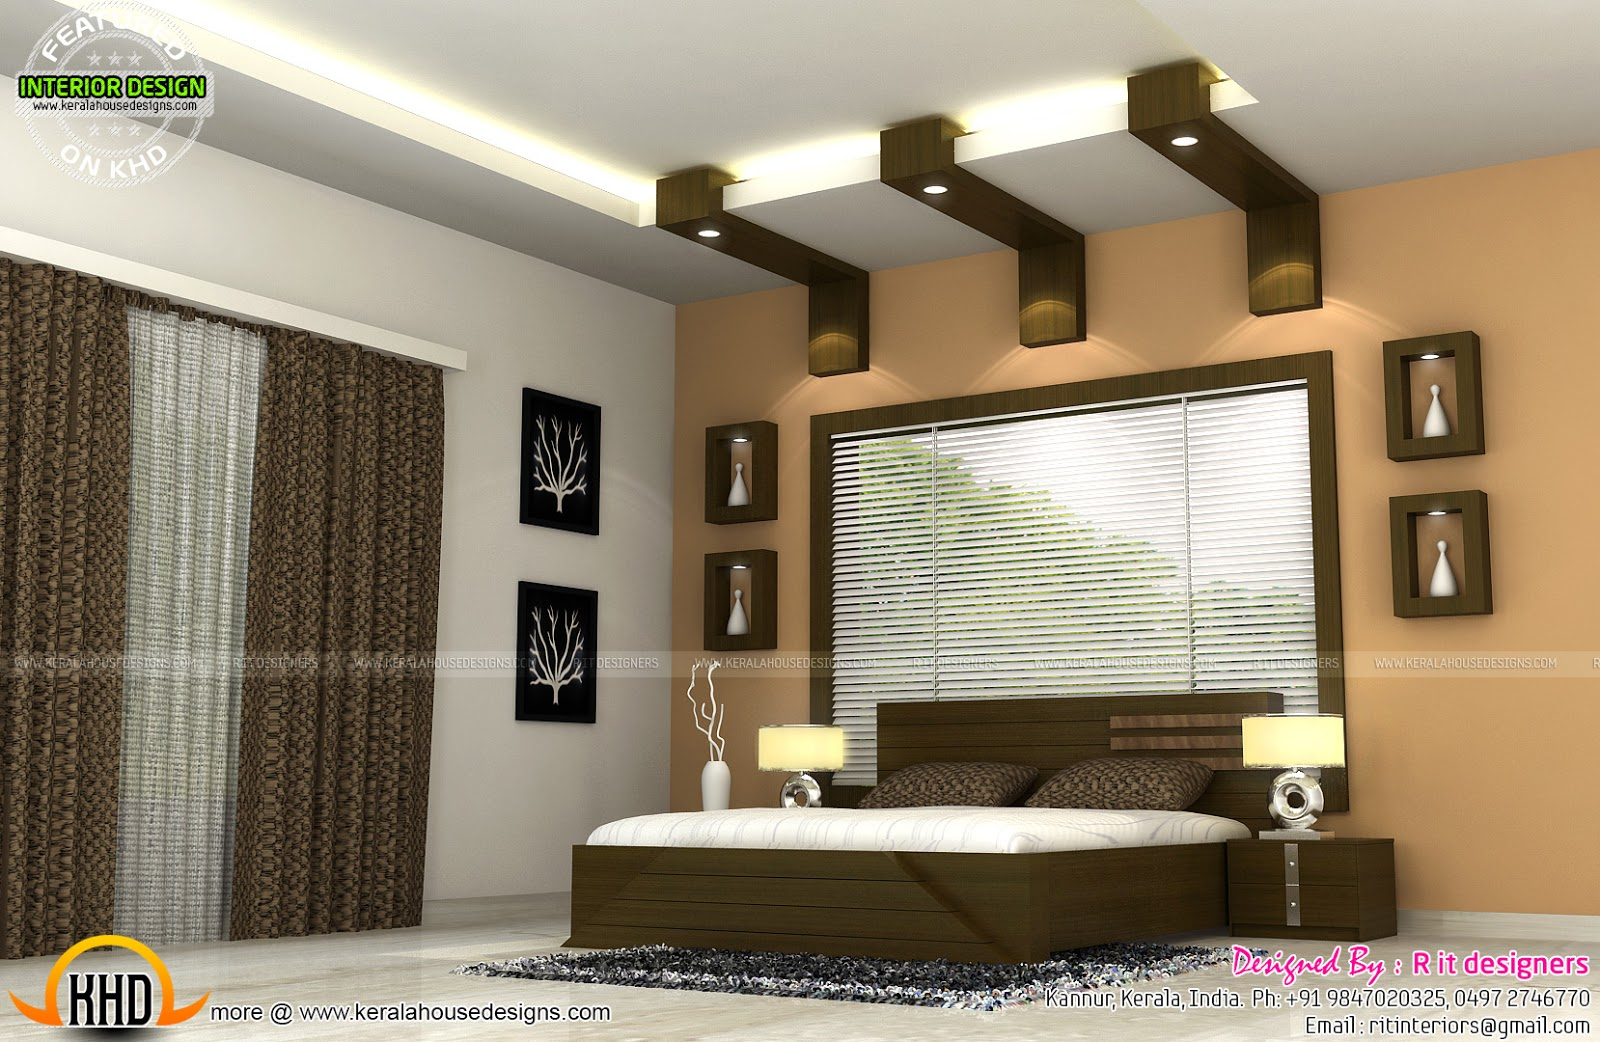 Interiors of bedrooms and kitchen kerala home design and for House designs 7 bedrooms